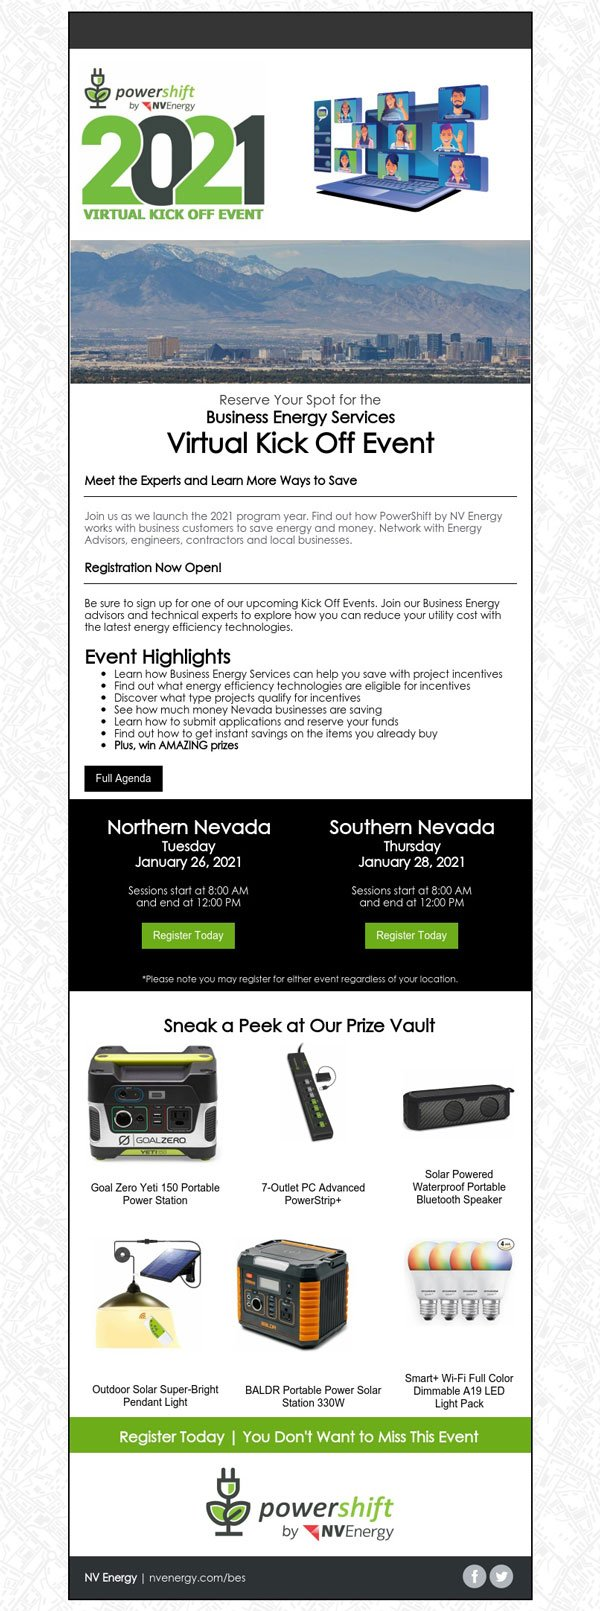 NV Energy's Business Energy Services - Southern Nevada